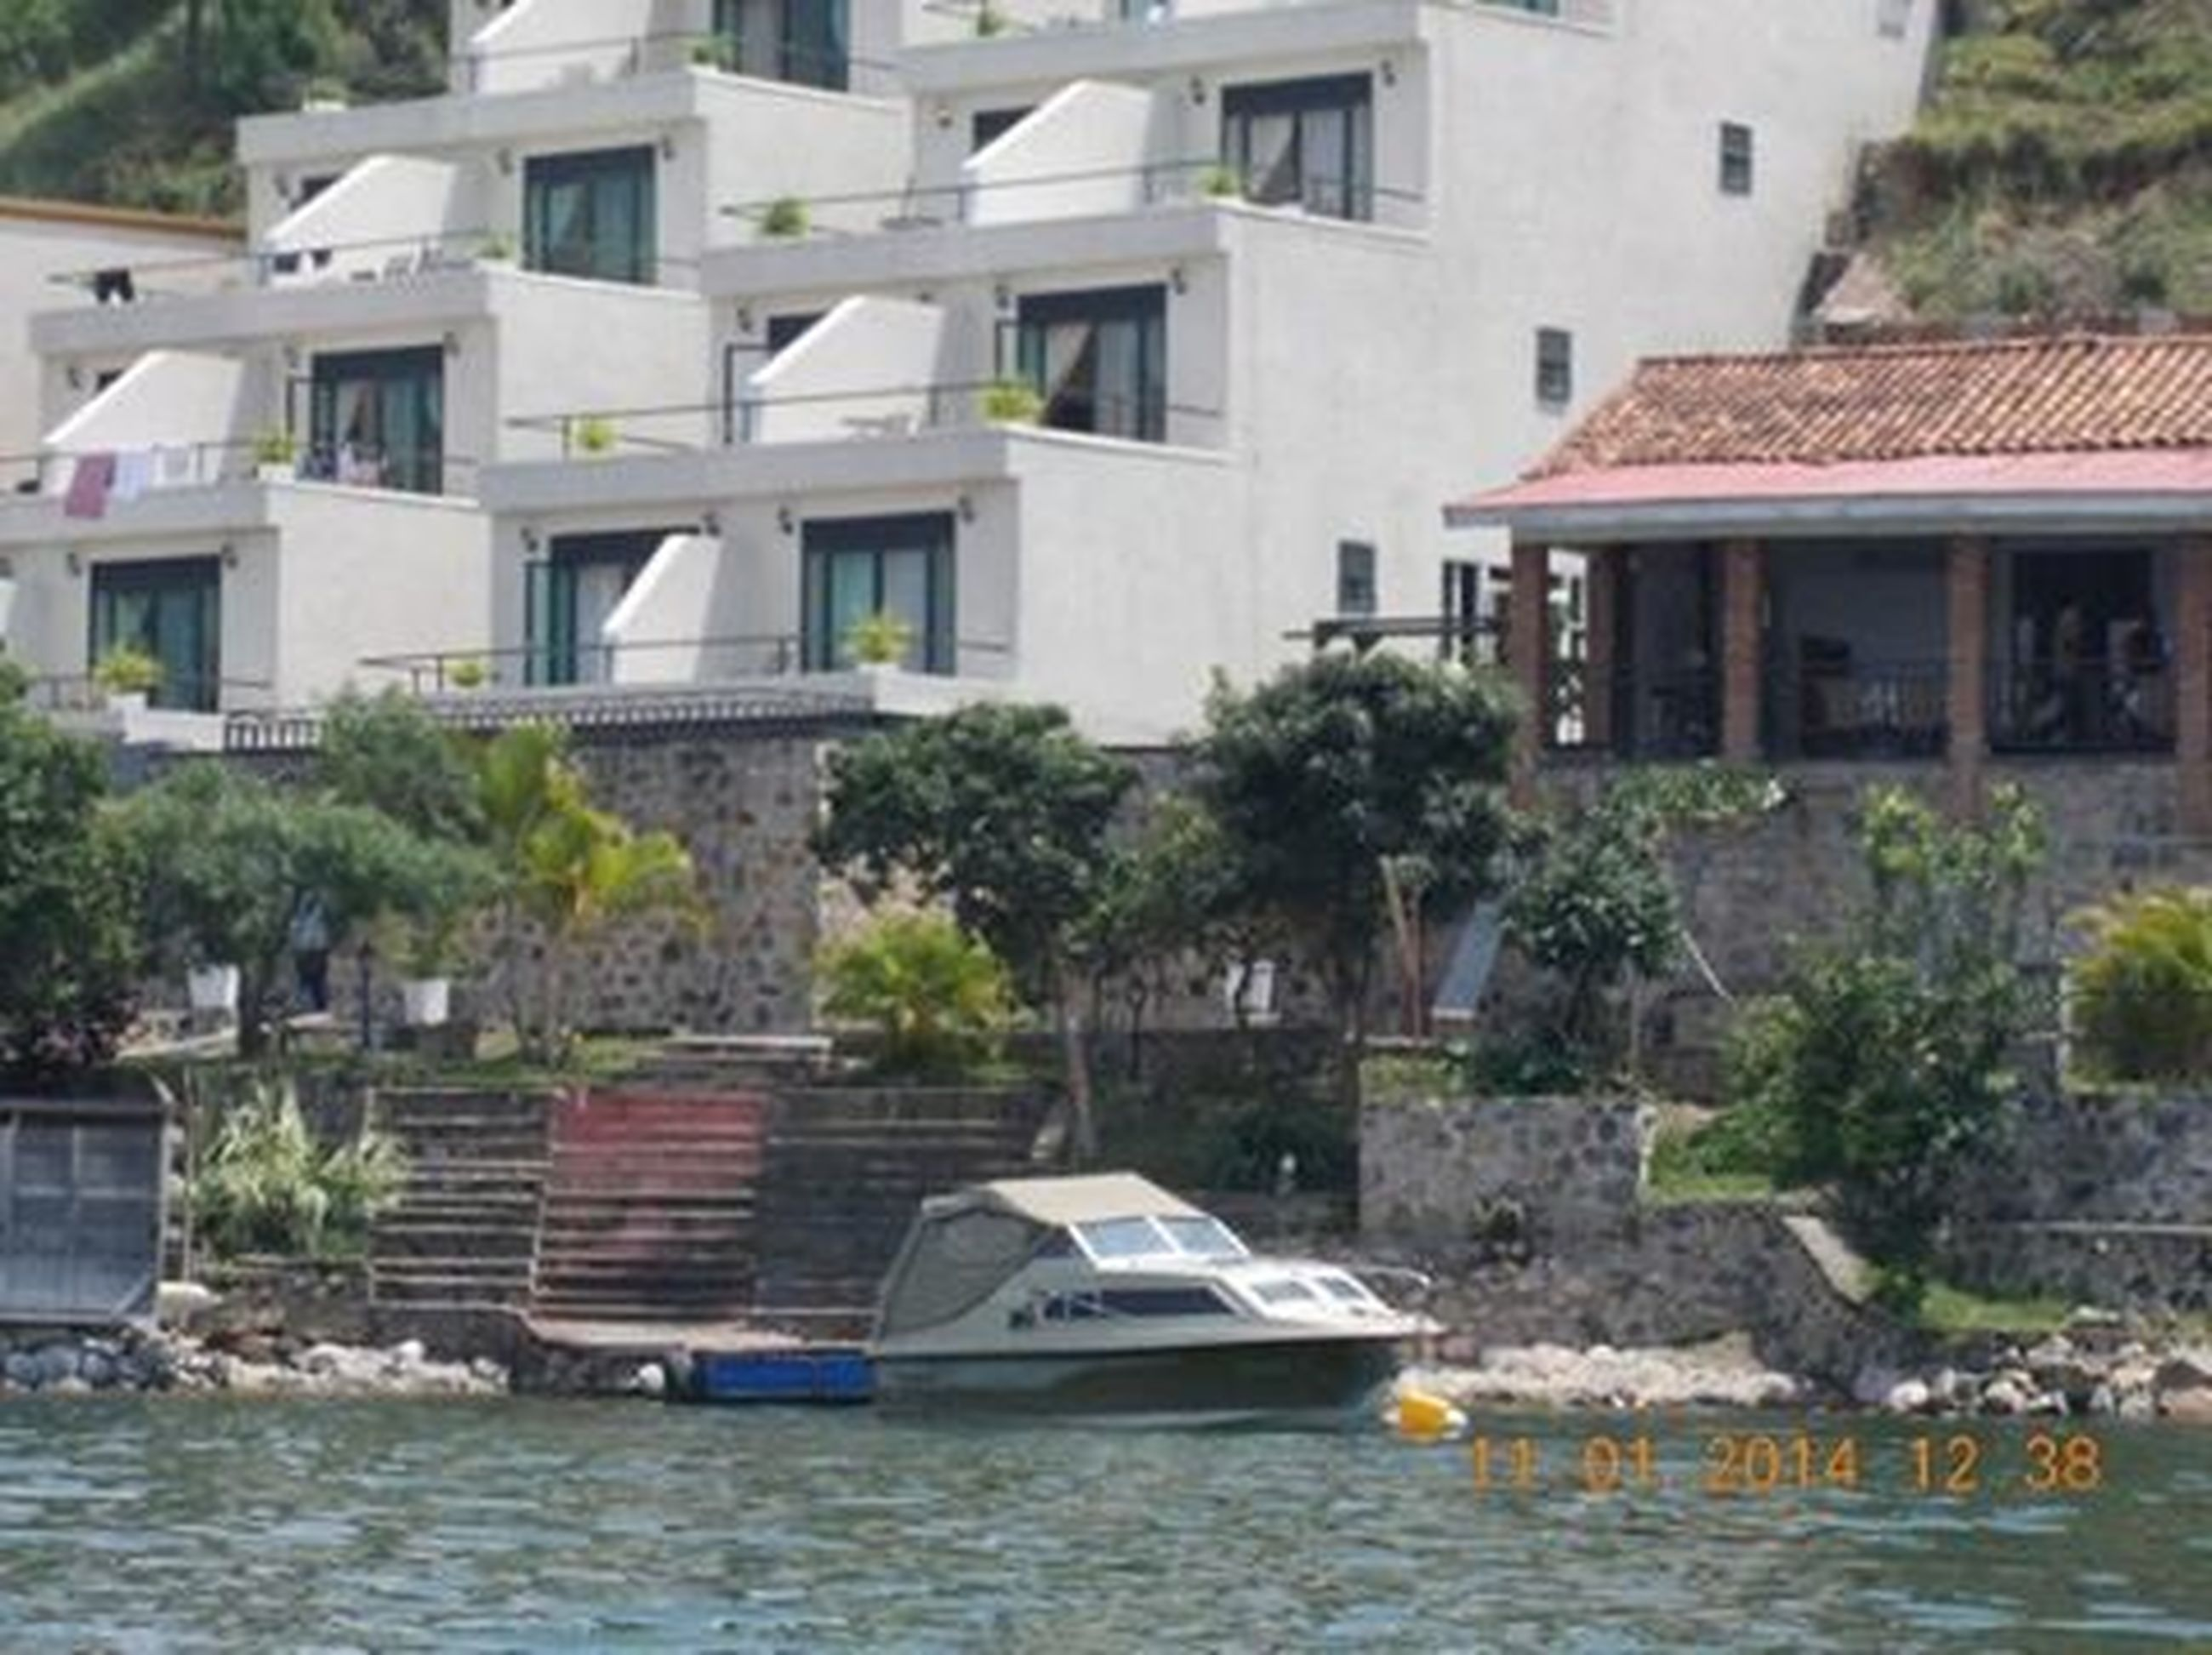 architecture, built structure, water, building exterior, transportation, waterfront, nautical vessel, residential structure, house, mode of transport, boat, residential building, river, town, outdoors, canal, residential district, day, no people